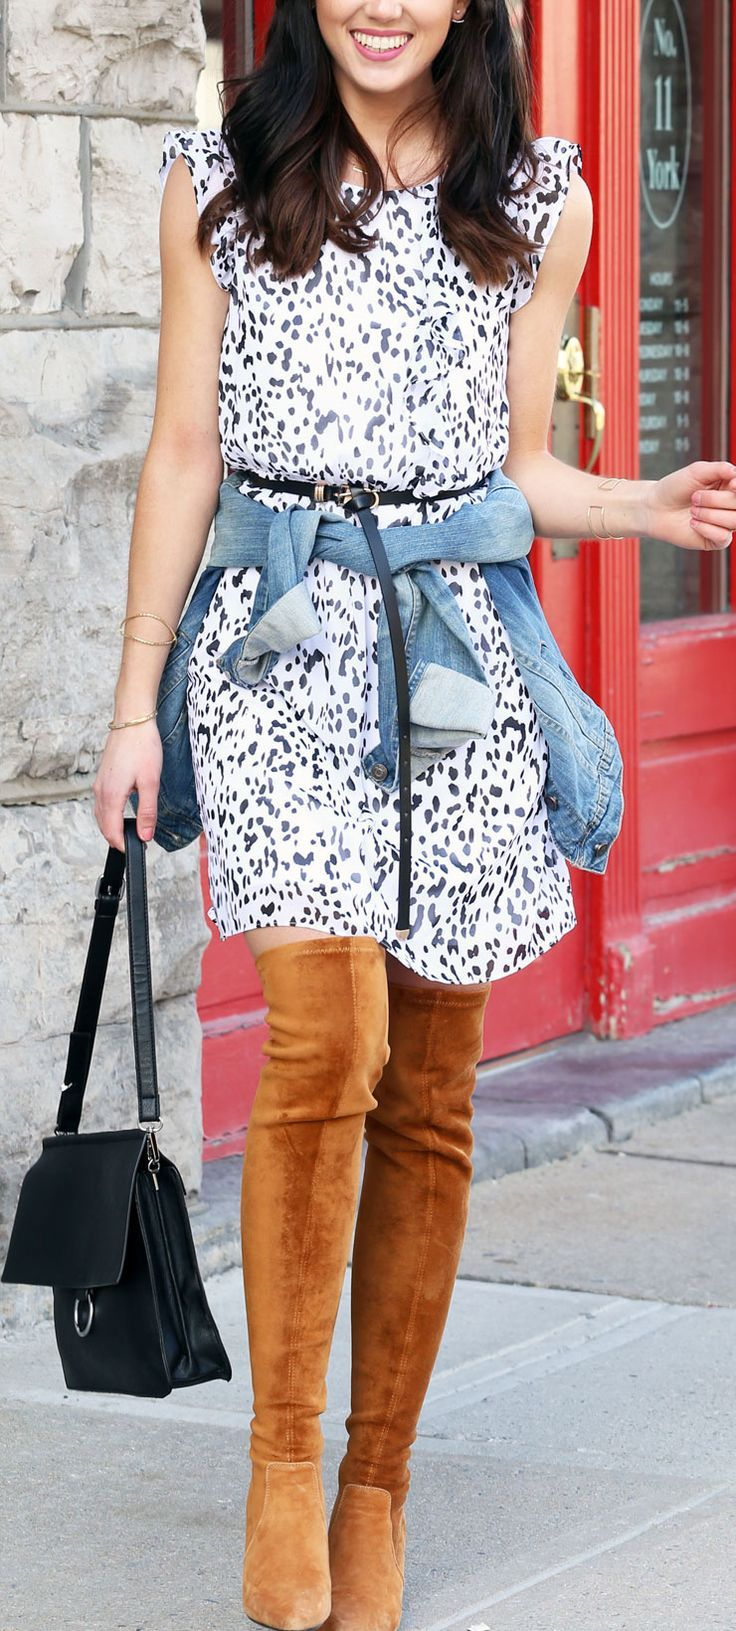 Polka dot spring dress paired with over the knee brown boots and a denim jacket tied around the waist